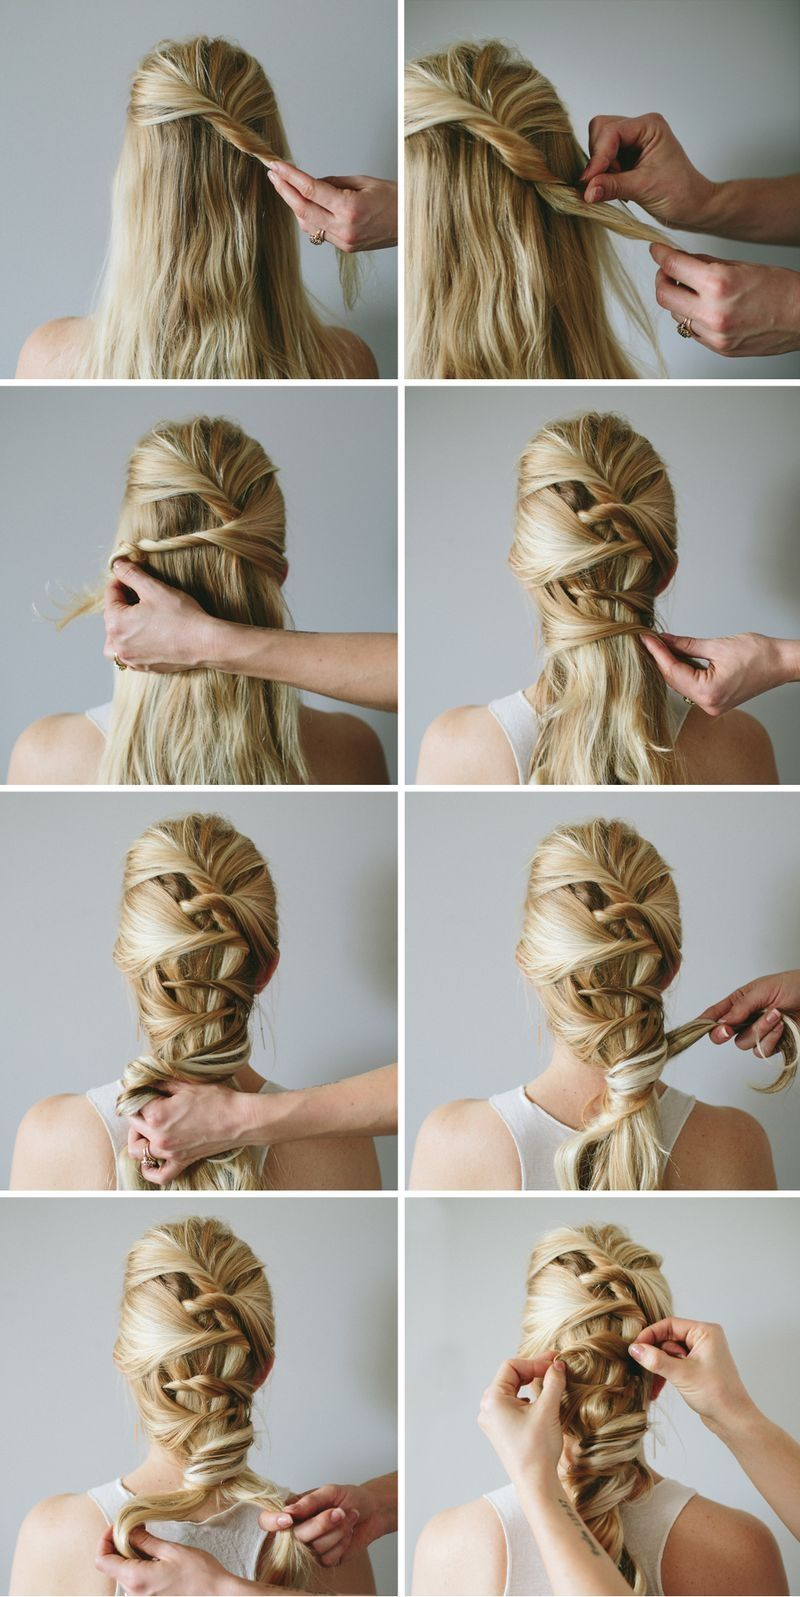 Fashion week Braids Hairstyles tumblr step by step pictures for woman